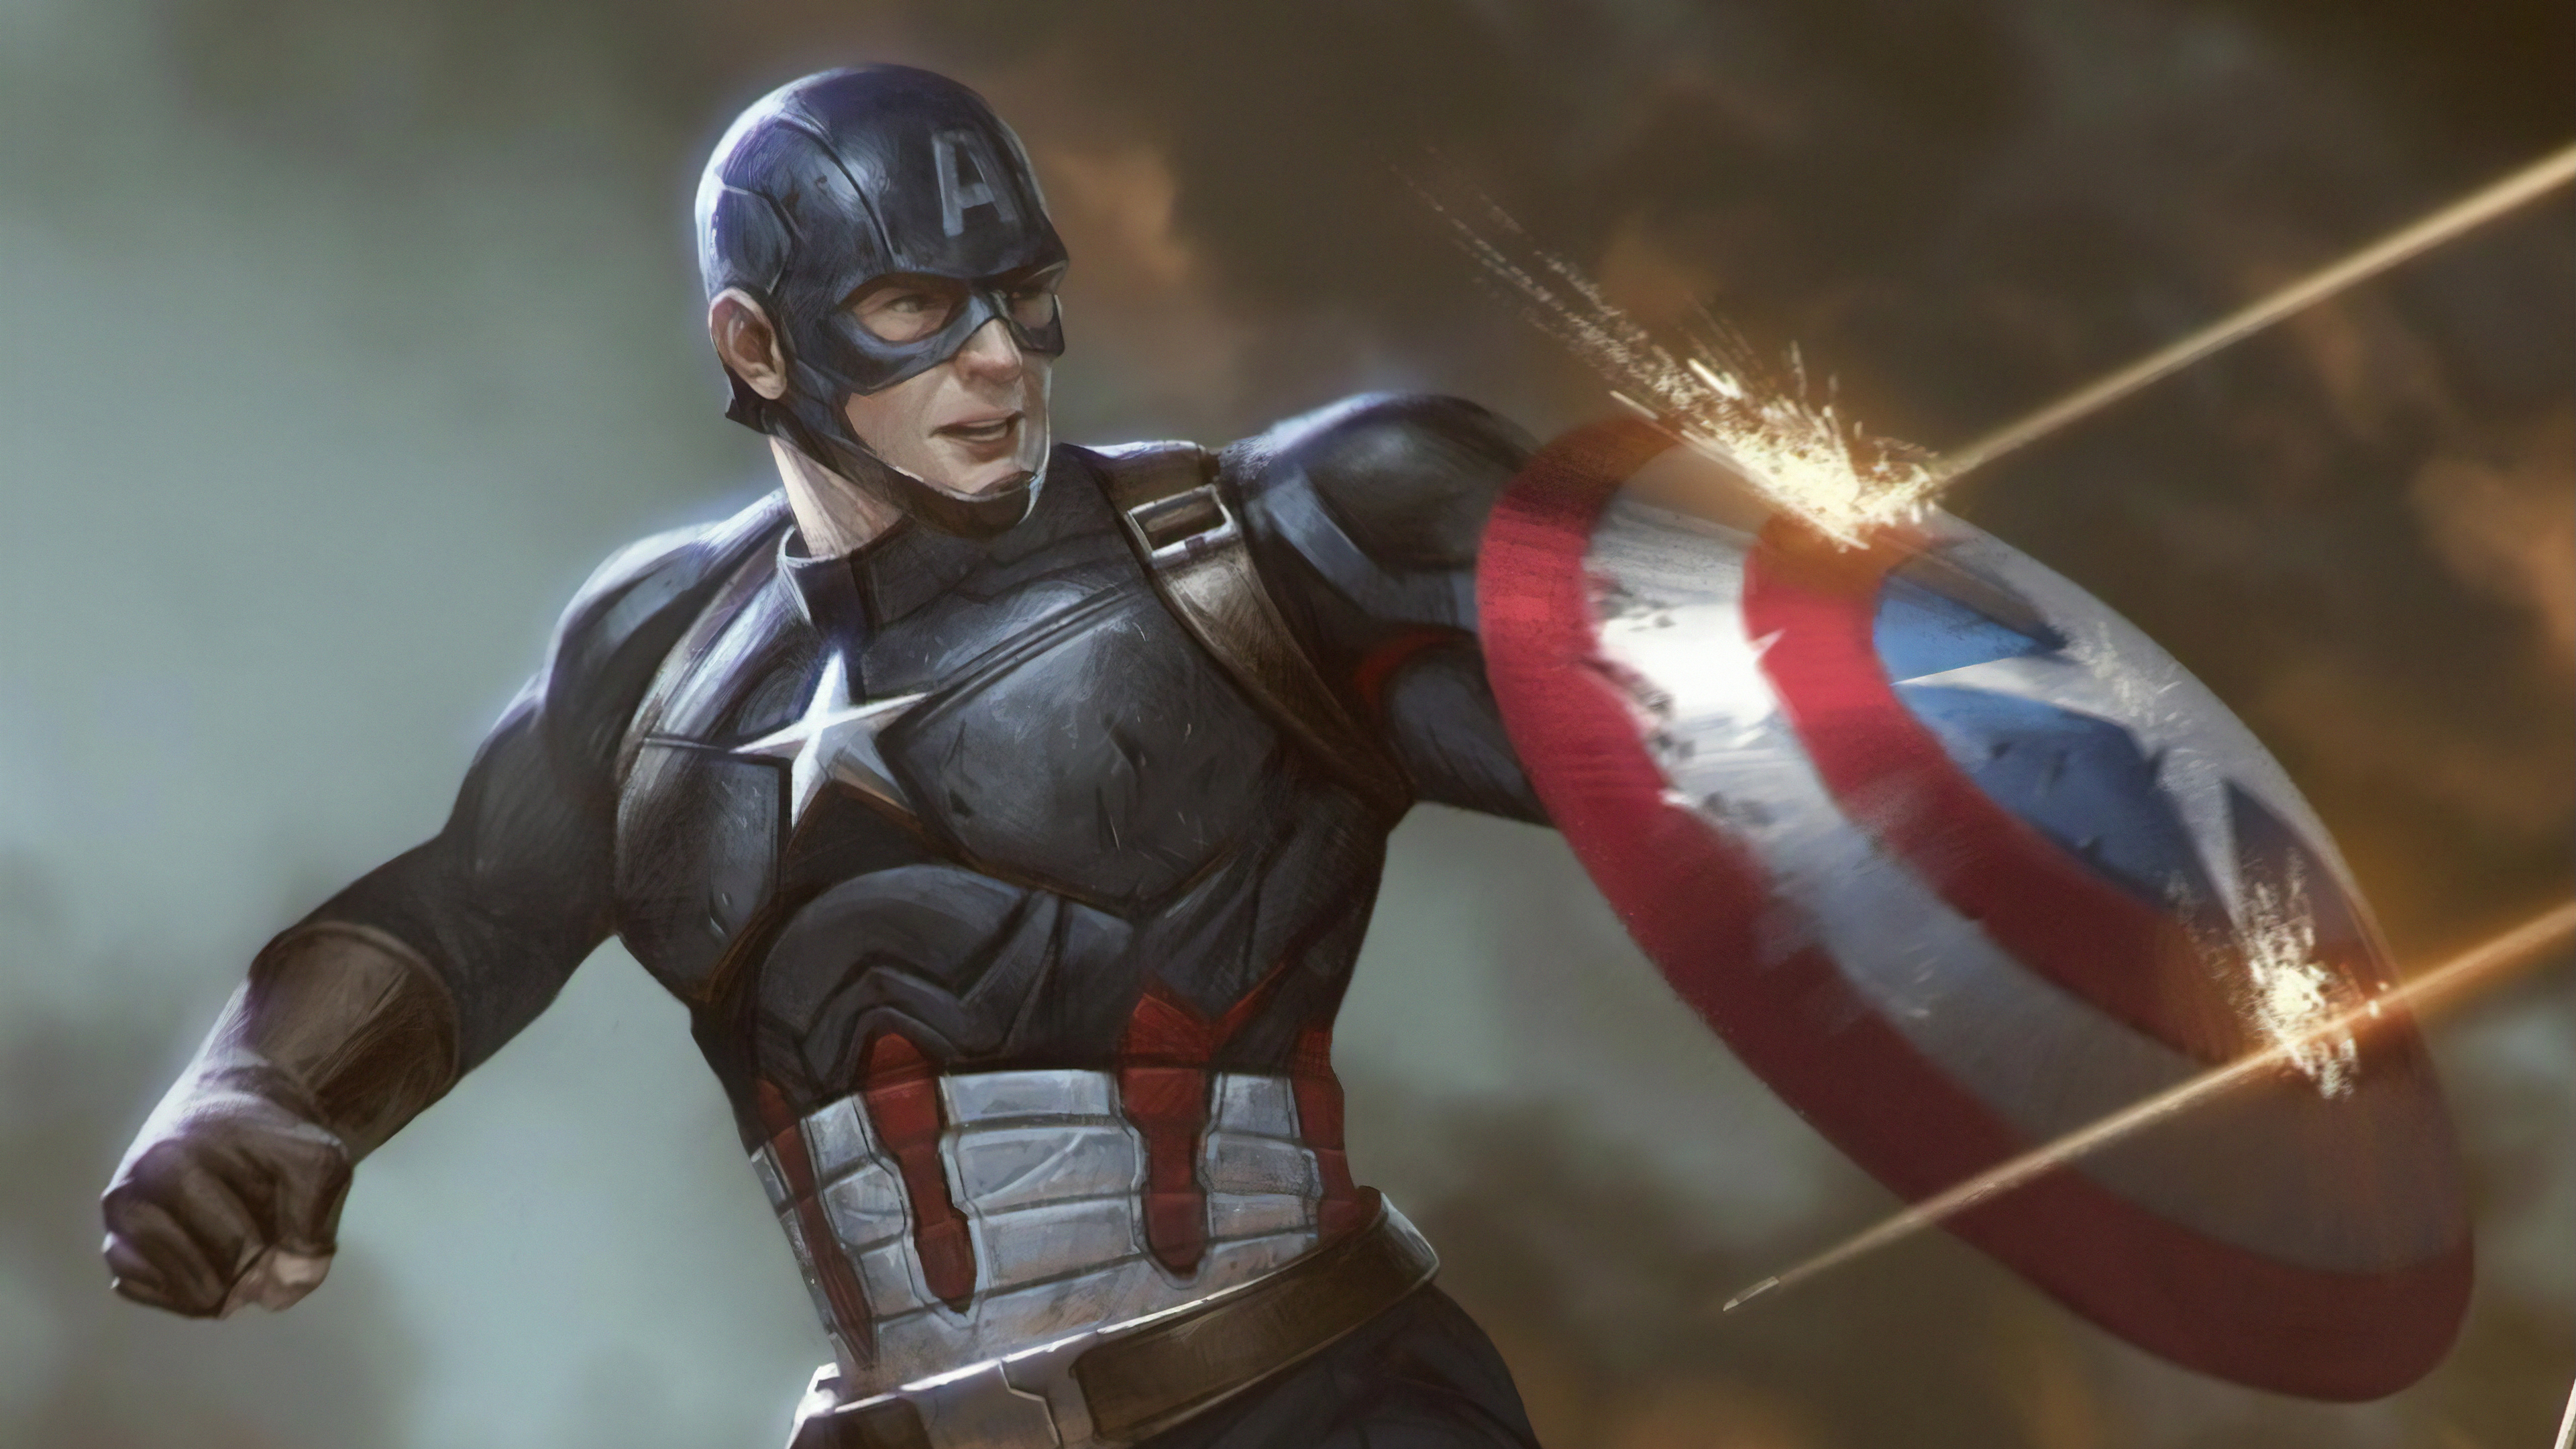 captain america and shield 1570918451 - Captain America And Shield - superheroes wallpapers, hd-wallpapers, digital art wallpapers, deviantart wallpapers, captain america wallpapers, artwork wallpapers, artist wallpapers, 4k-wallpapers